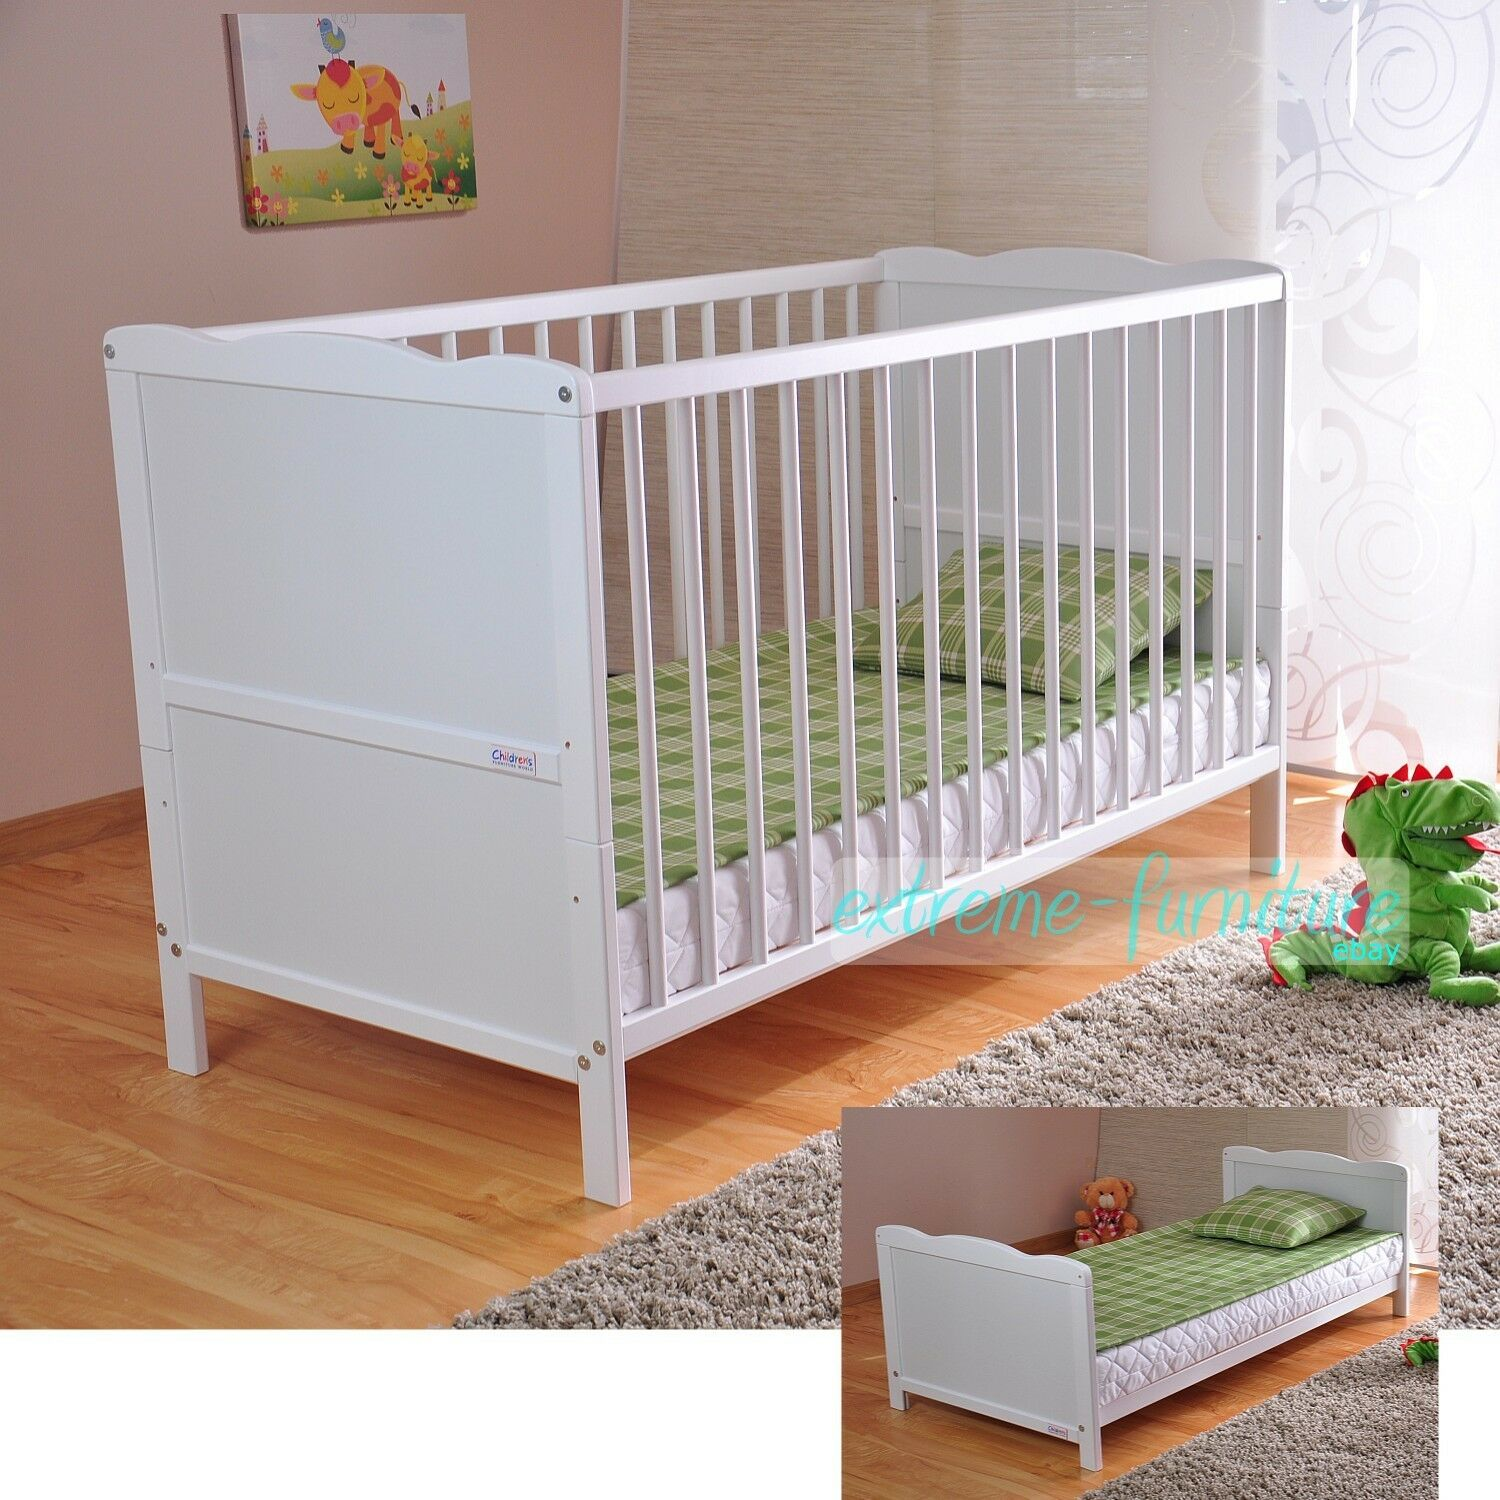 Wooden Baby Cot Bed & Deluxe Aloe Vera Mattress Converts